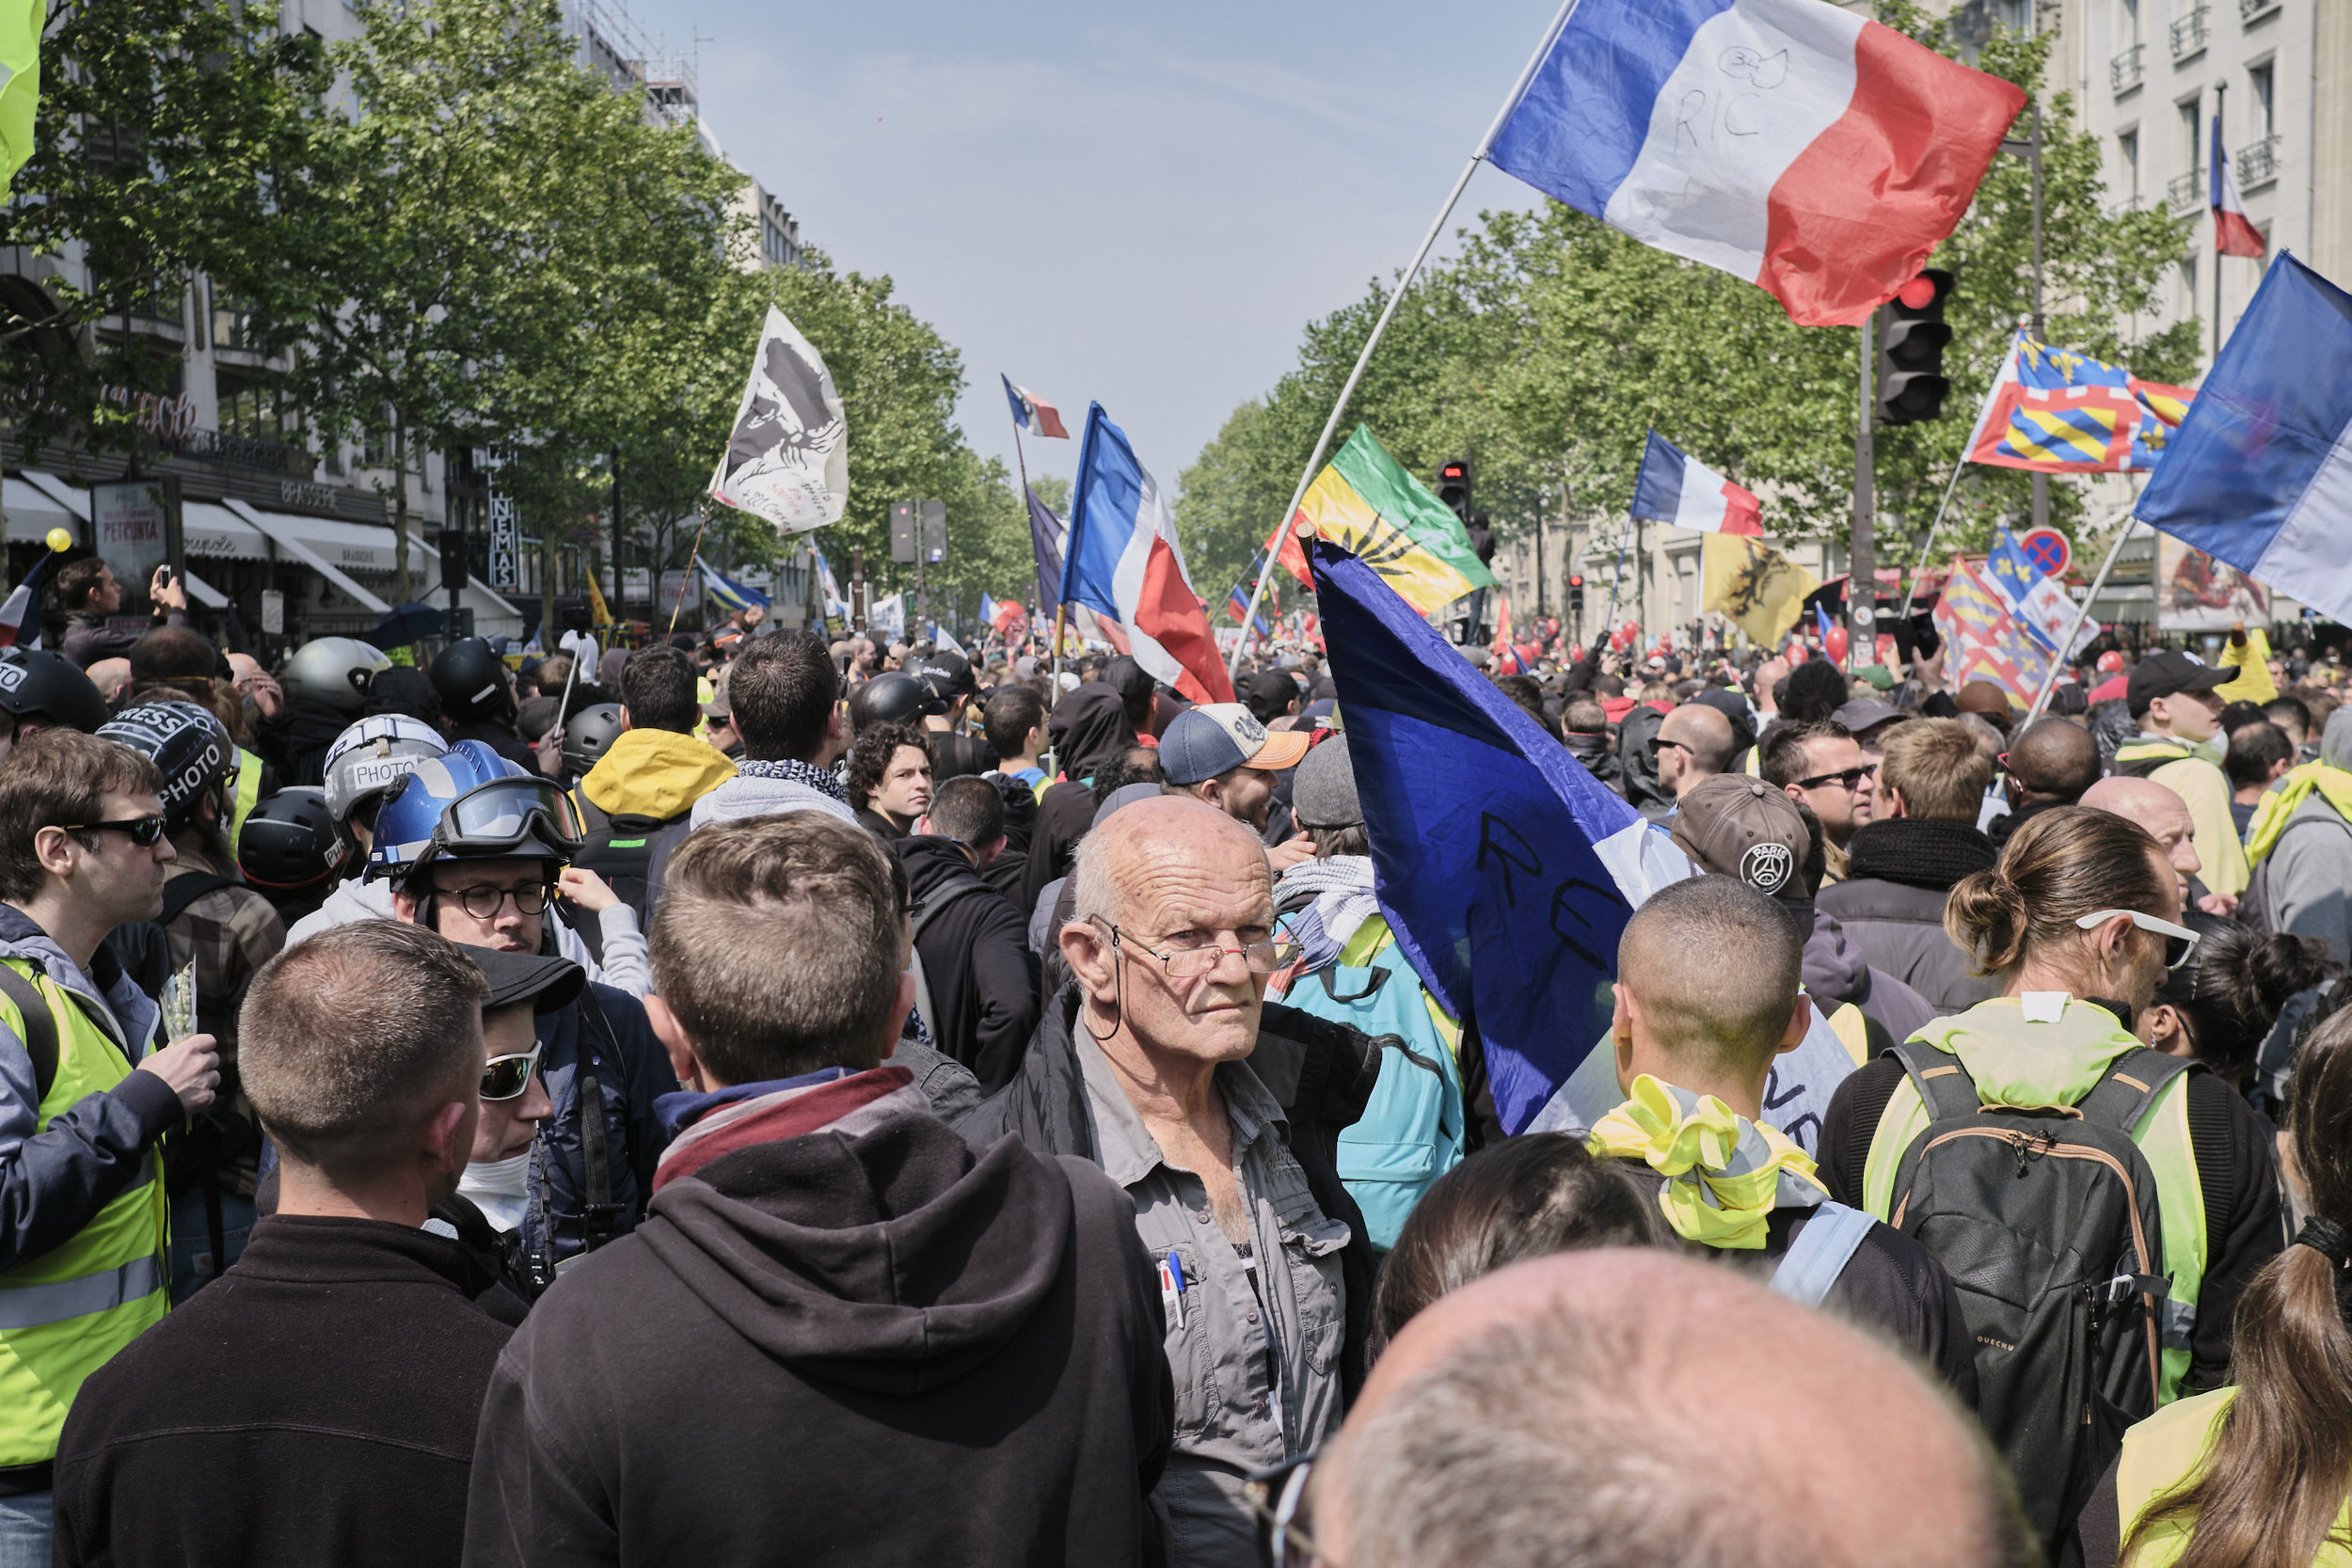 Protesters gather at Boulevard du Montparnasse for the march to The La Place D'italie celebrating international worker's day.